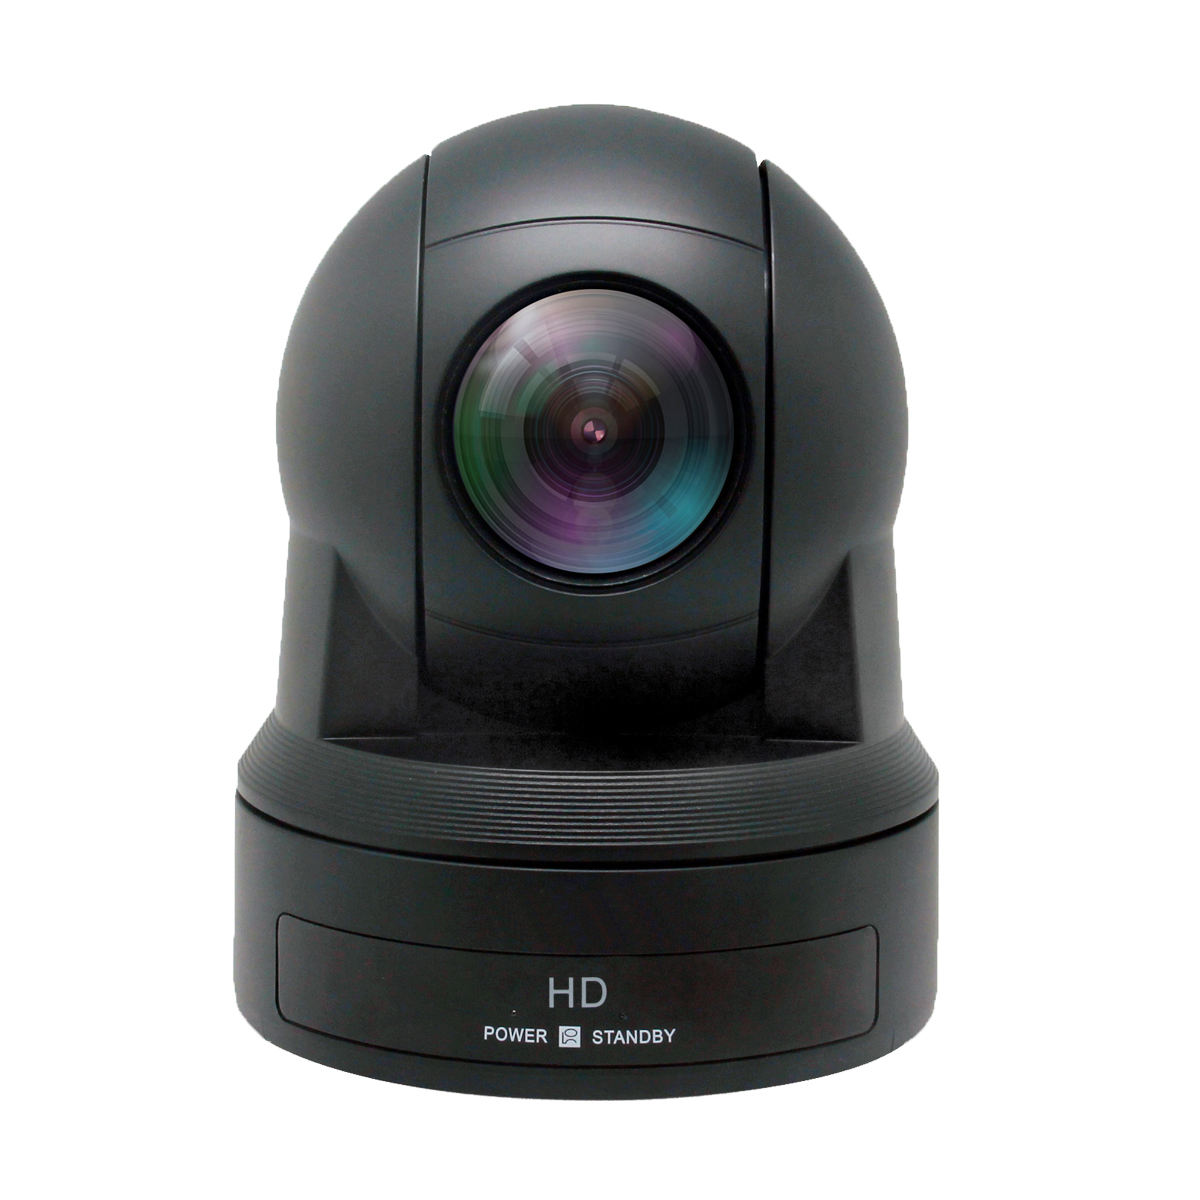 KATO KT-HD61A 20X Zoom hd-sdi ptz camera ONVIF RTSP IP camera for streaming recording NDI optional